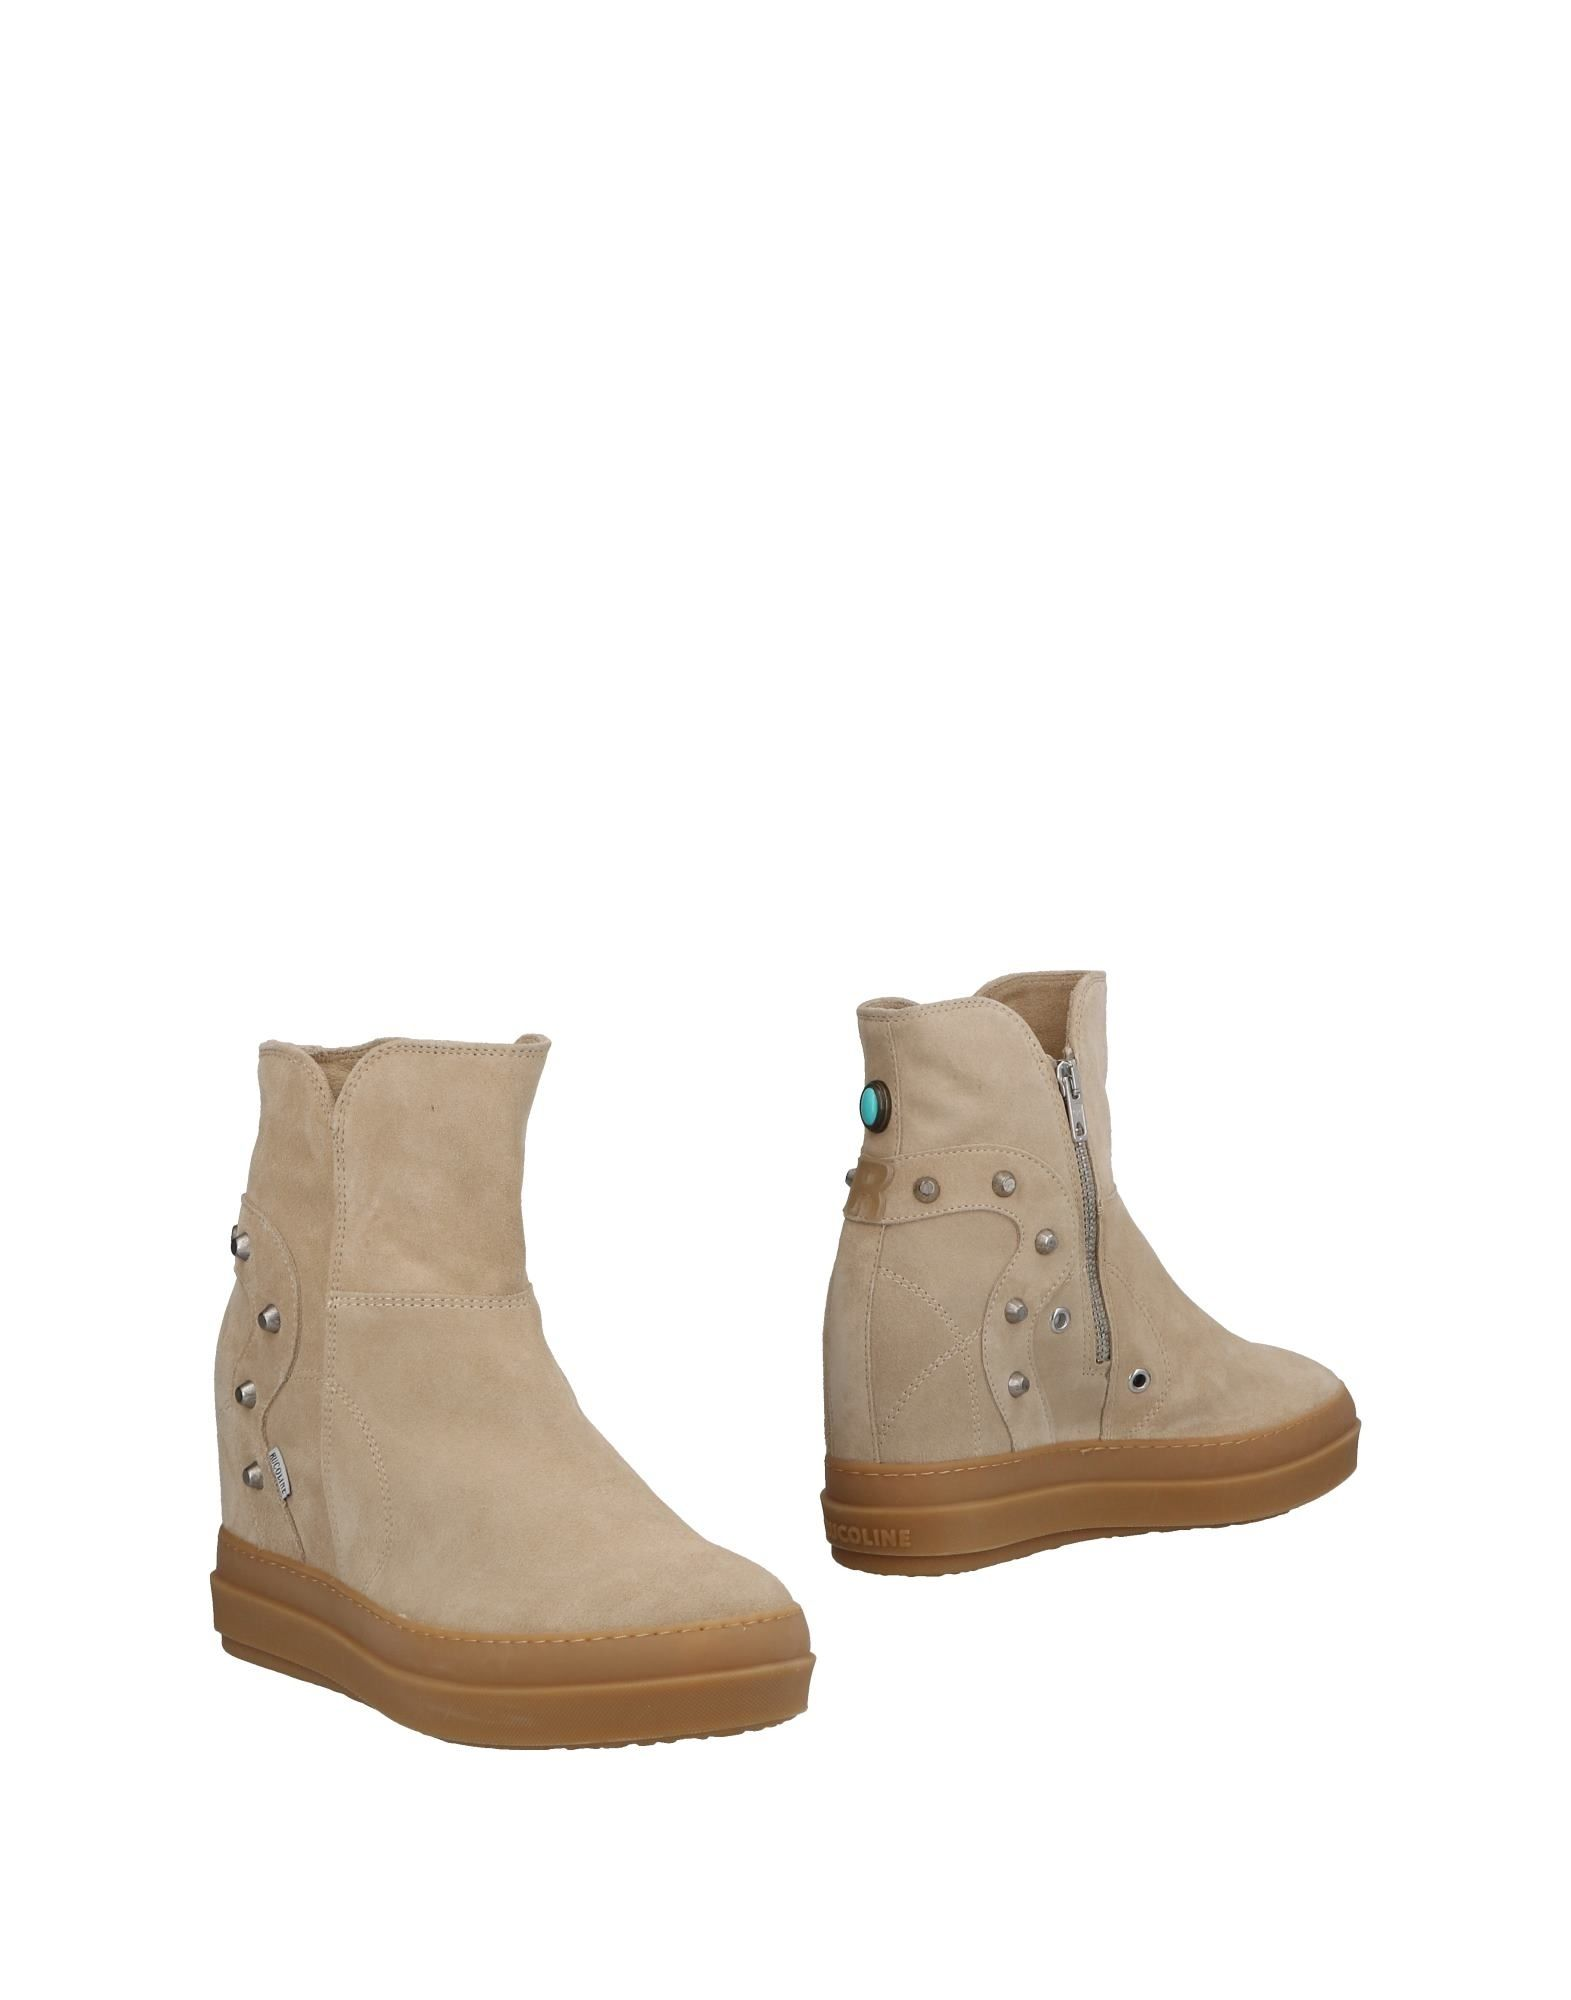 Bottine Ruco Line Femme - Bottines Ruco Line Beige Confortable et belle